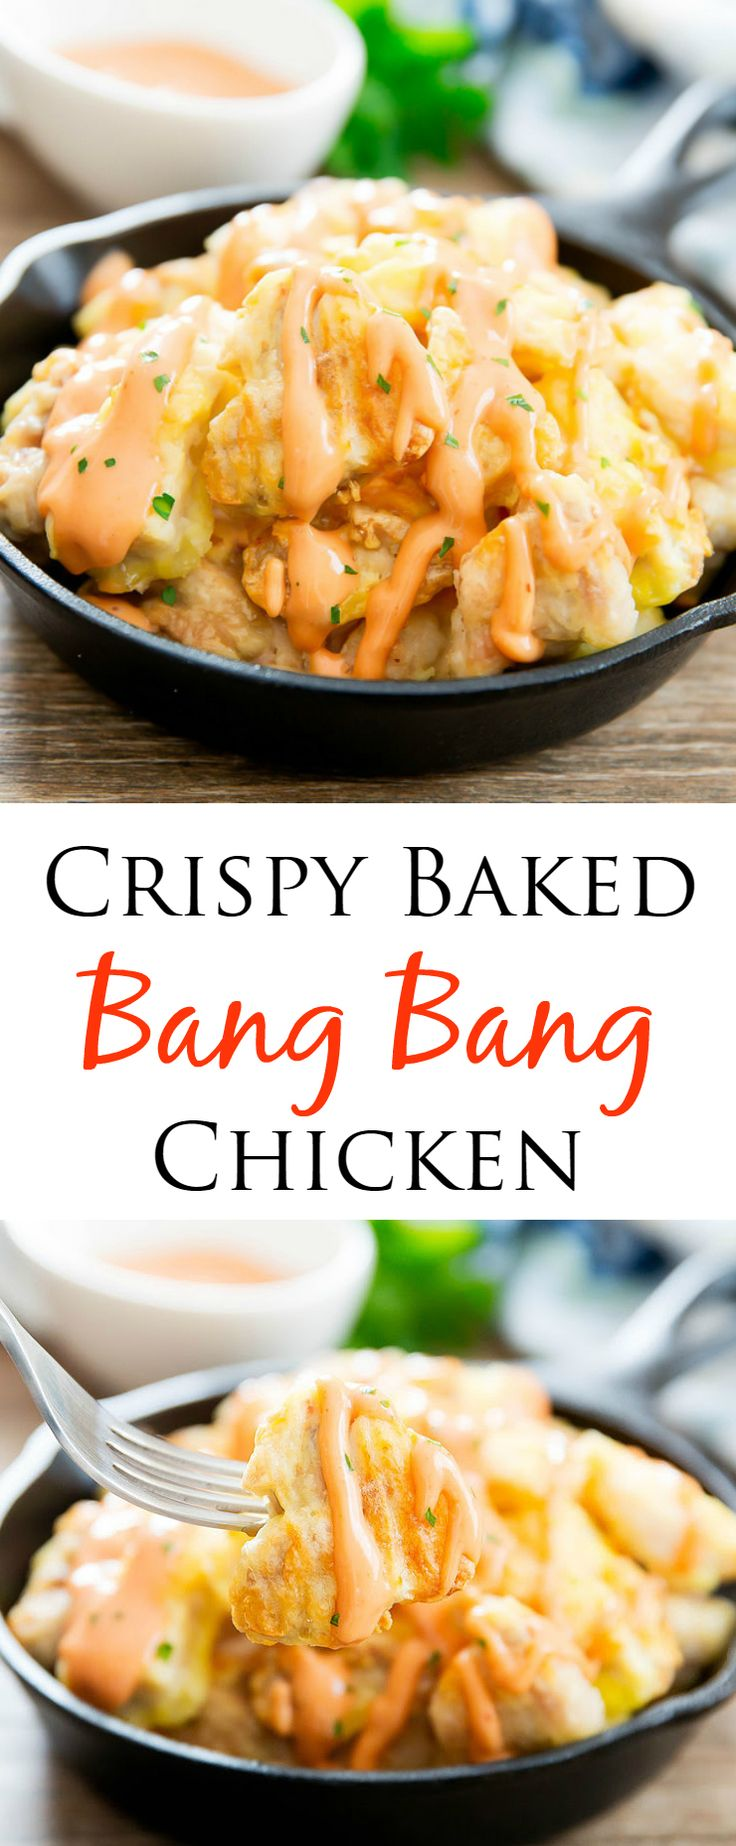 Bang Bang Crispy Baked Chicken. No breadcrumbs used! An easy weeknight meal.